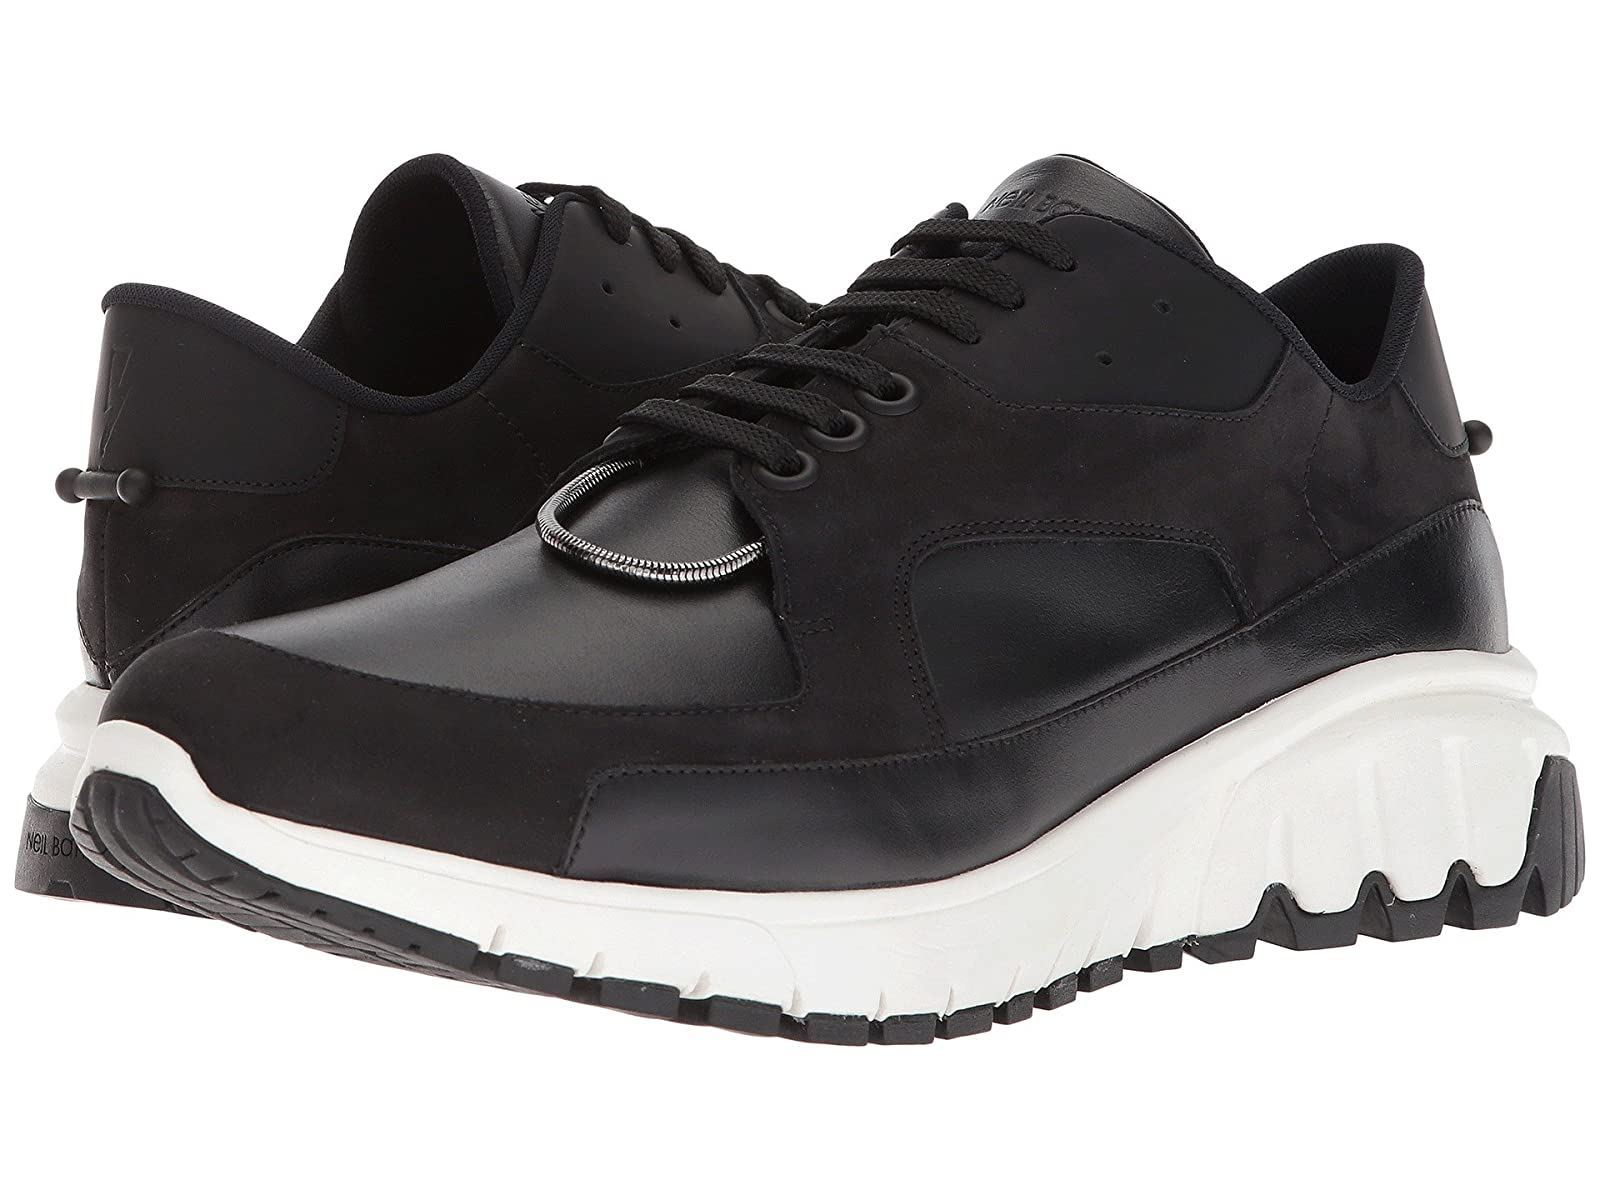 Neil Barrett Chain RunnerAtmospheric grades have affordable shoes